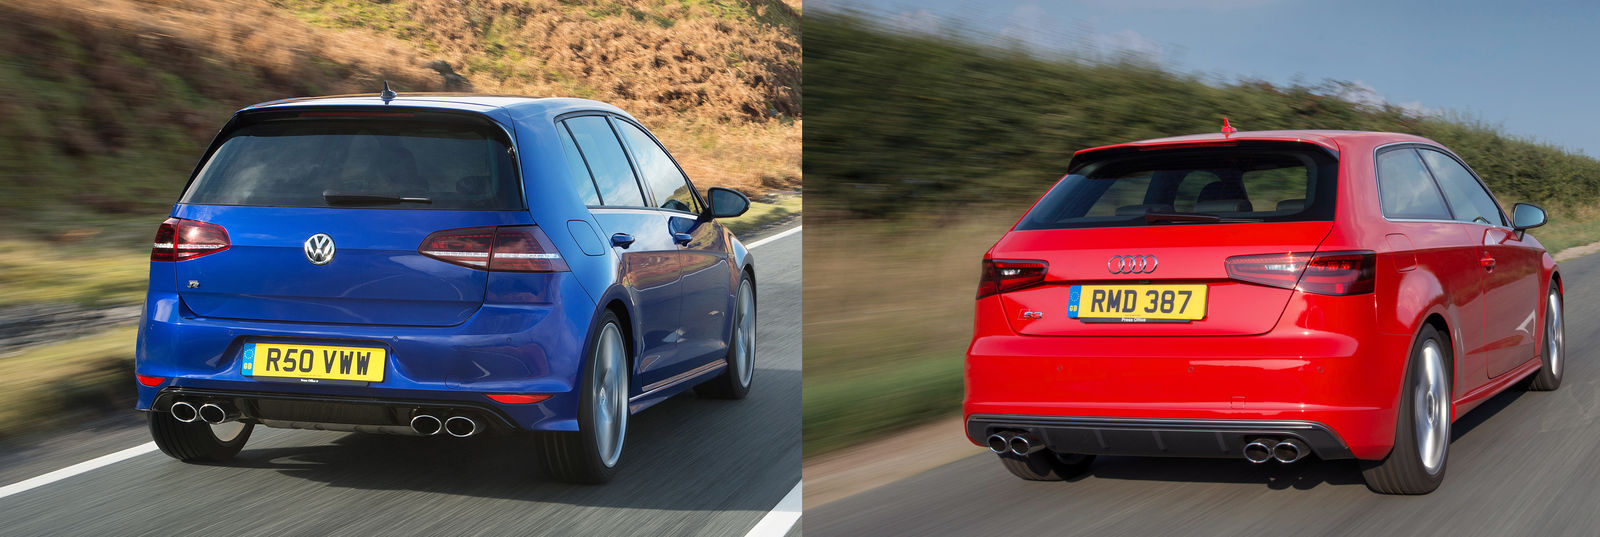 Vw Golf R Vs Audi S3 Which Is The Best Super Hatch On Sale